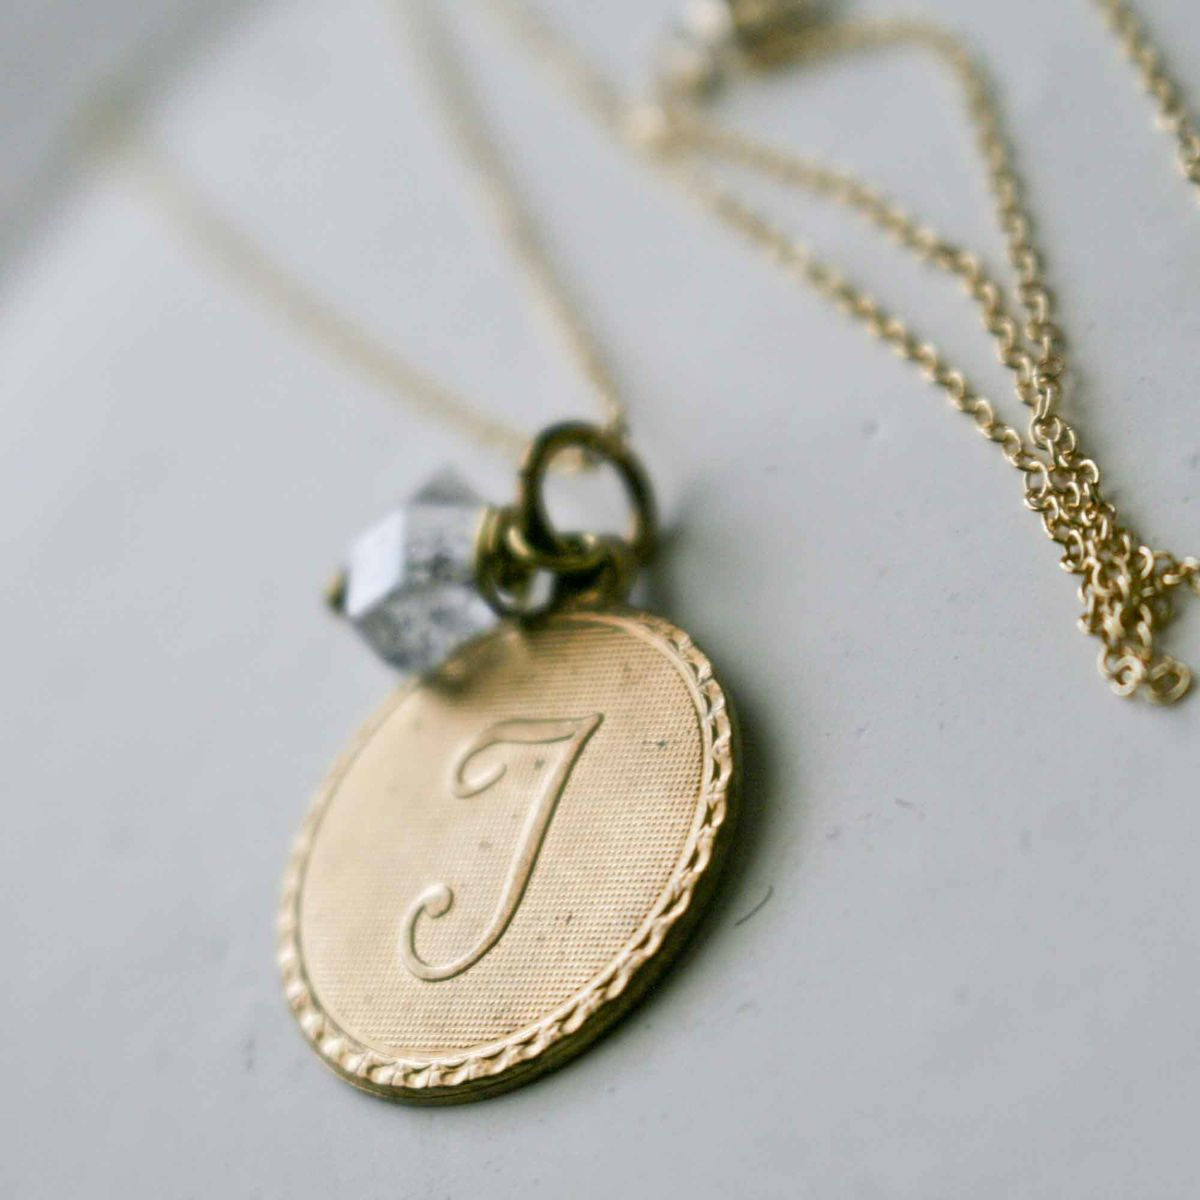 Uppercase Cursive Initial Monogram Letter Round Disc Charm Necklace Intended For Latest Letter K Alphabet Locket Element Necklaces (Gallery 15 of 25)